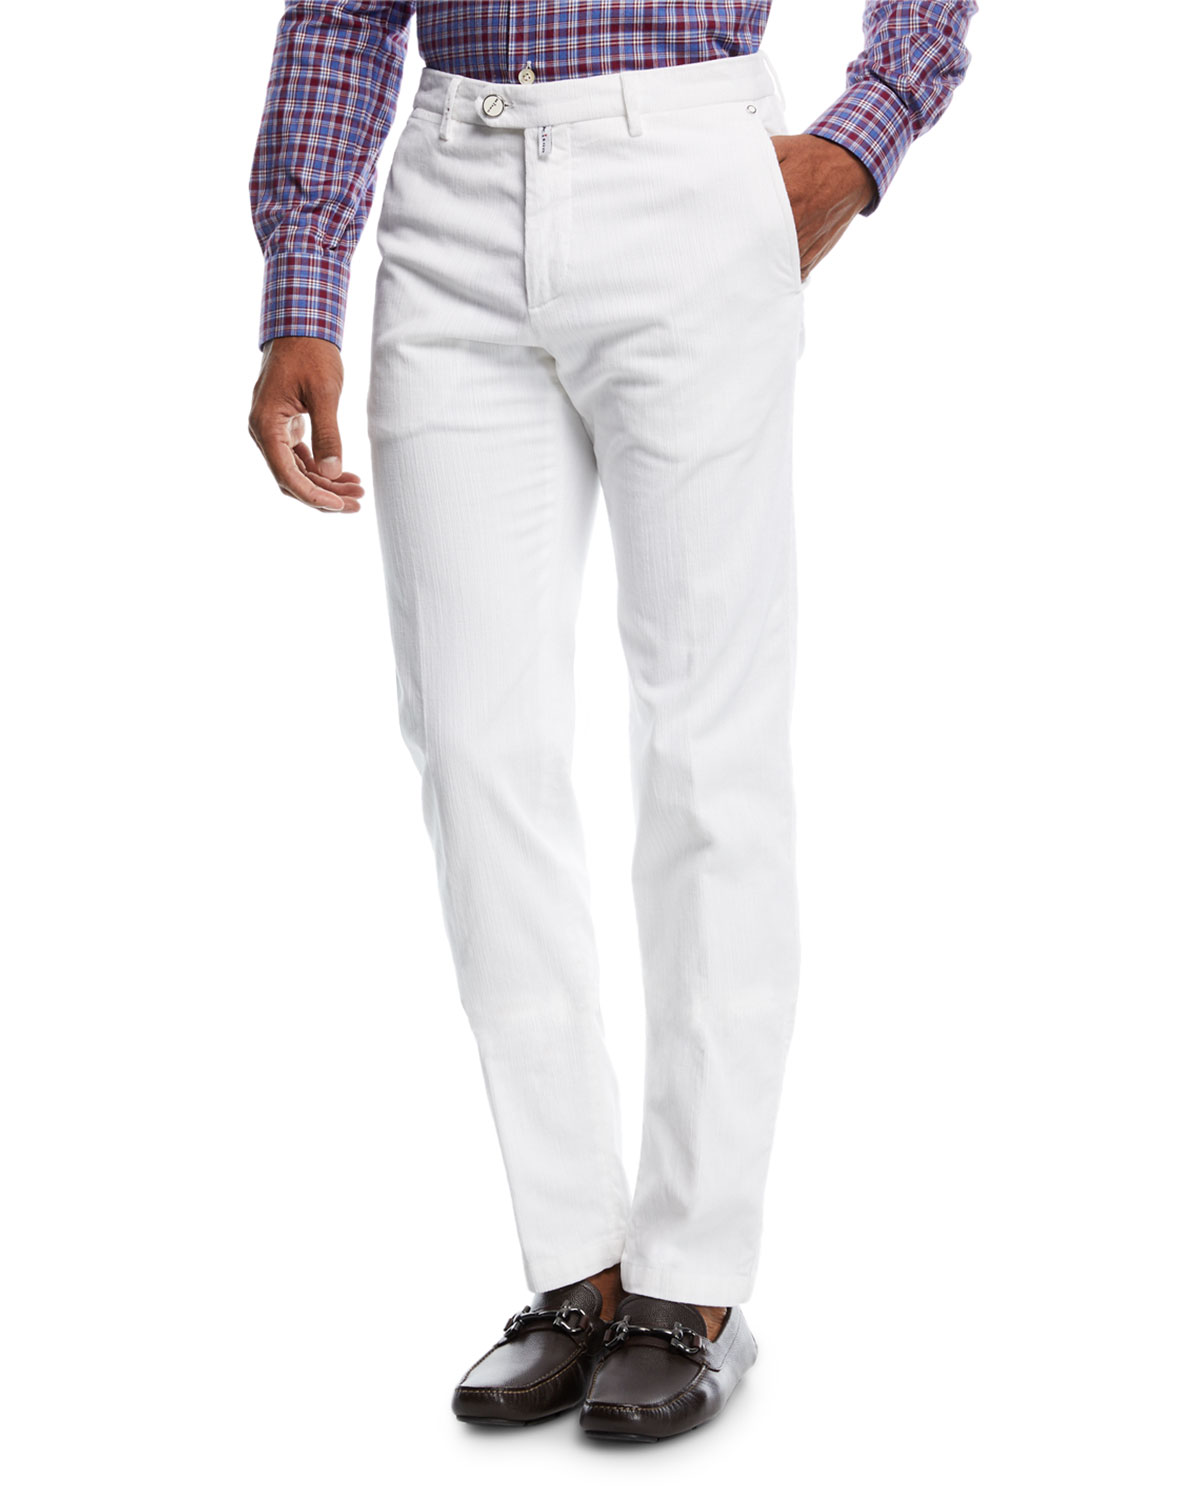 Kiton Pants CORDUROY STRAIGHT-LEG PANTS, WHITE